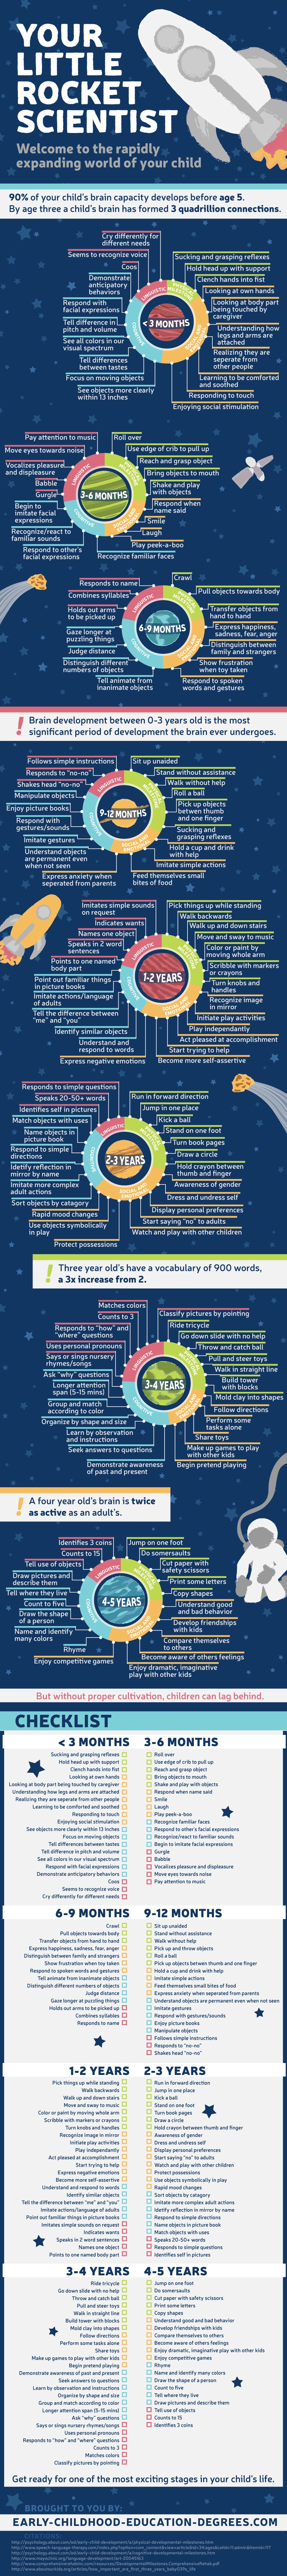 The Milestones of a Child's Mind Development Infographic